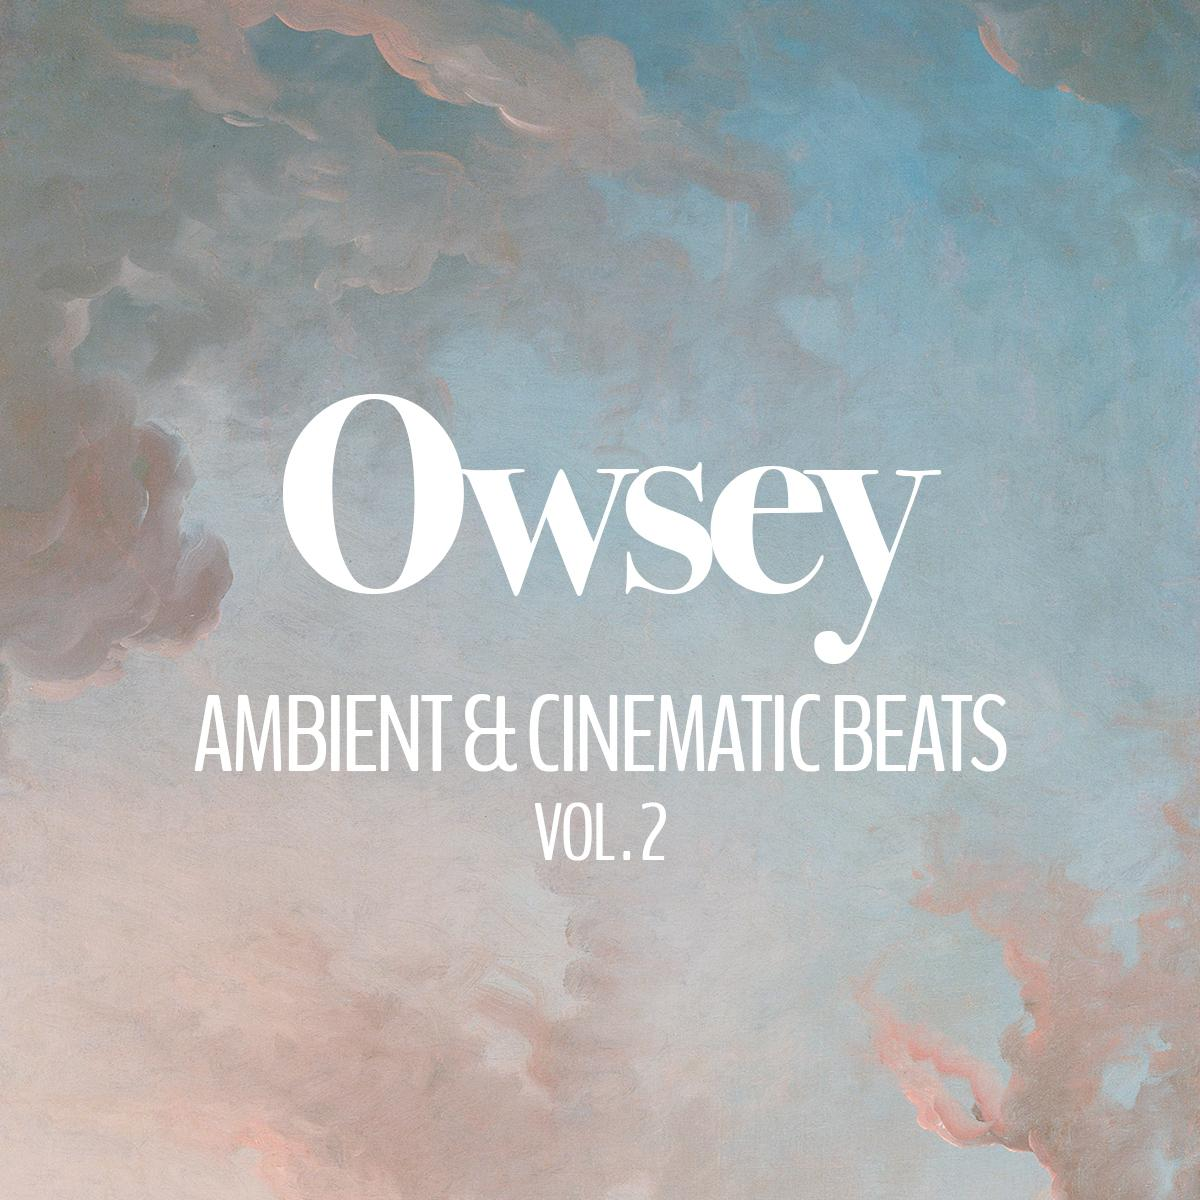 Ambient & Cinematic Beats Vol.2